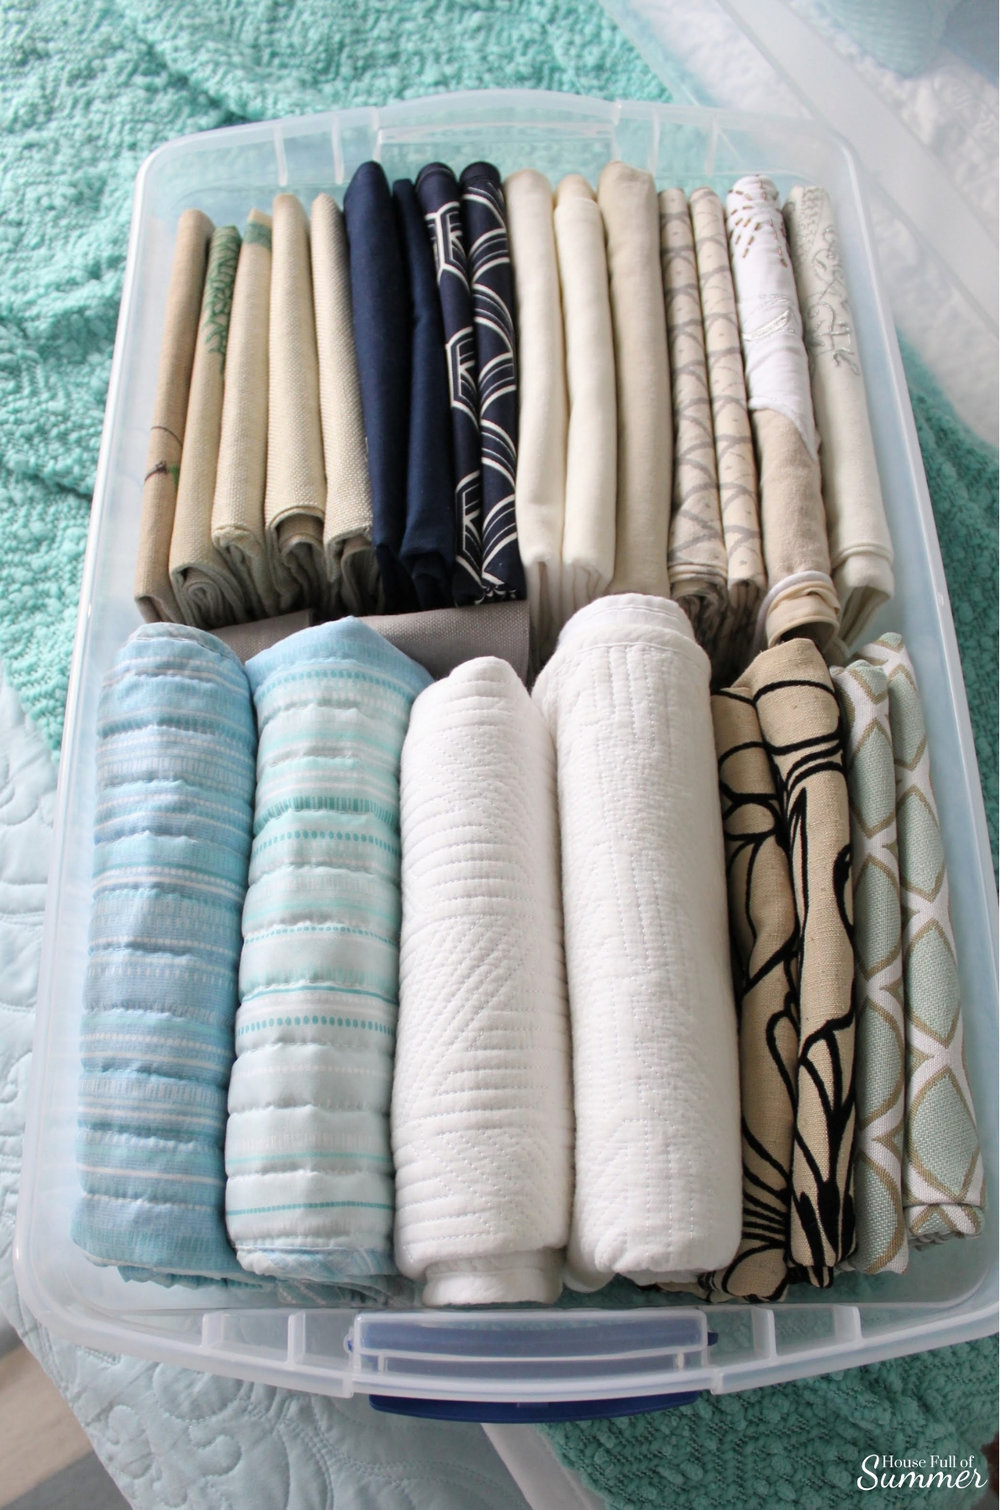 Storage Solutions for the Throw Pillow Obsessed | House Full of Summer - how to create extra storage space for throw pillows and pillow covers, bedding, organization, folding technique #mariekondo kondo method